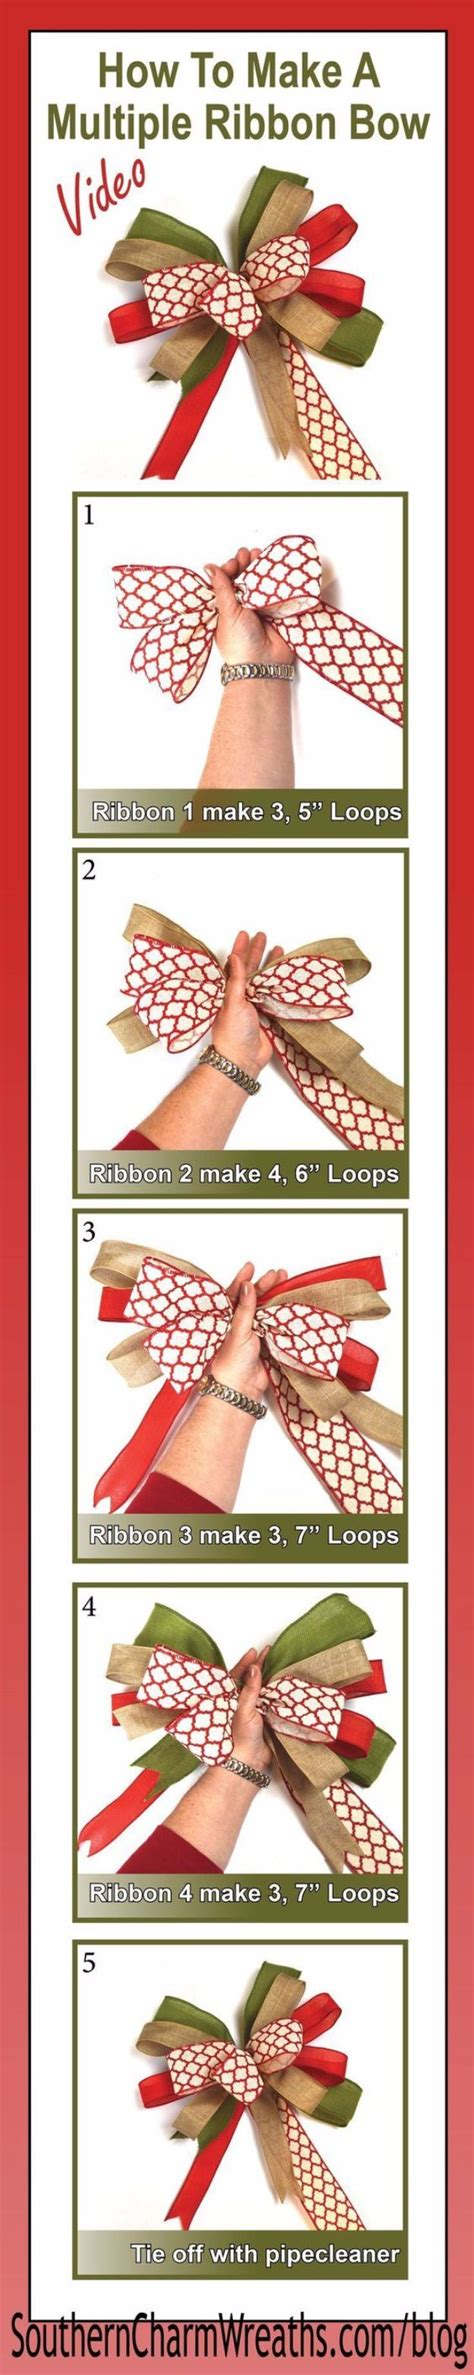 how to best store christmas bows 50 creative bows to make for your packages